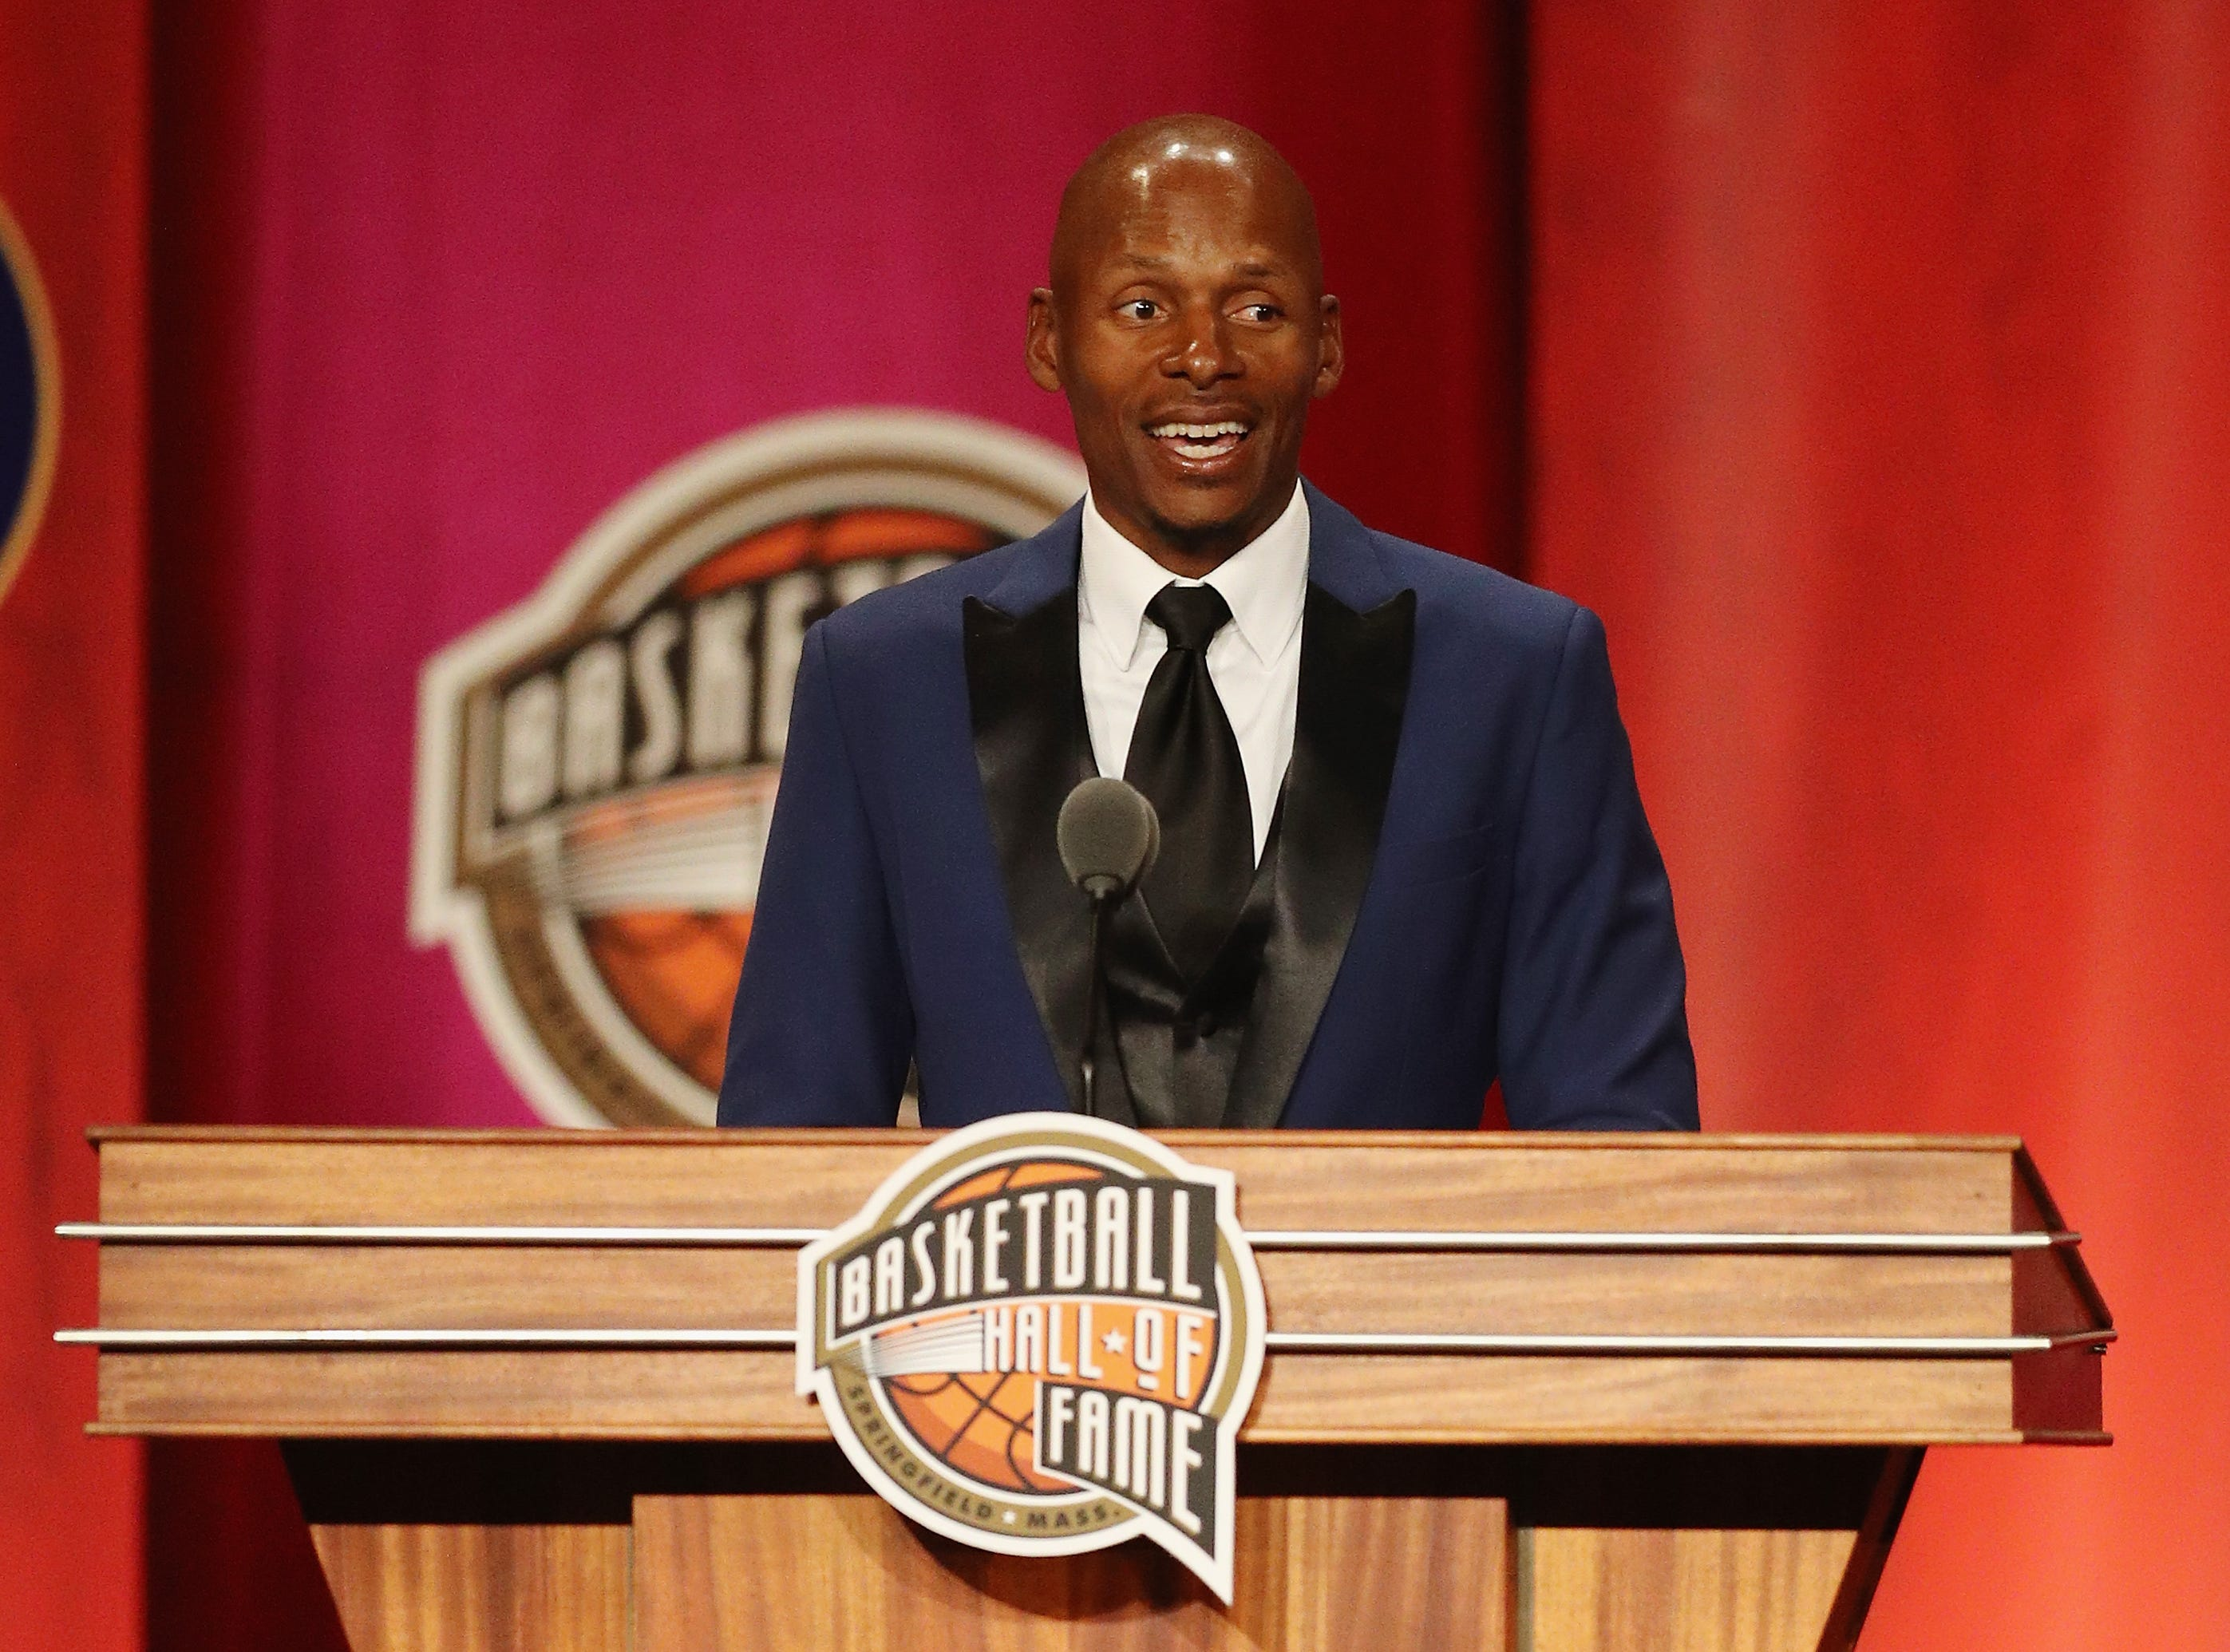 Ray Allen speaks during the 2018 Basketball Hall of Fame Enshrinement Ceremony.